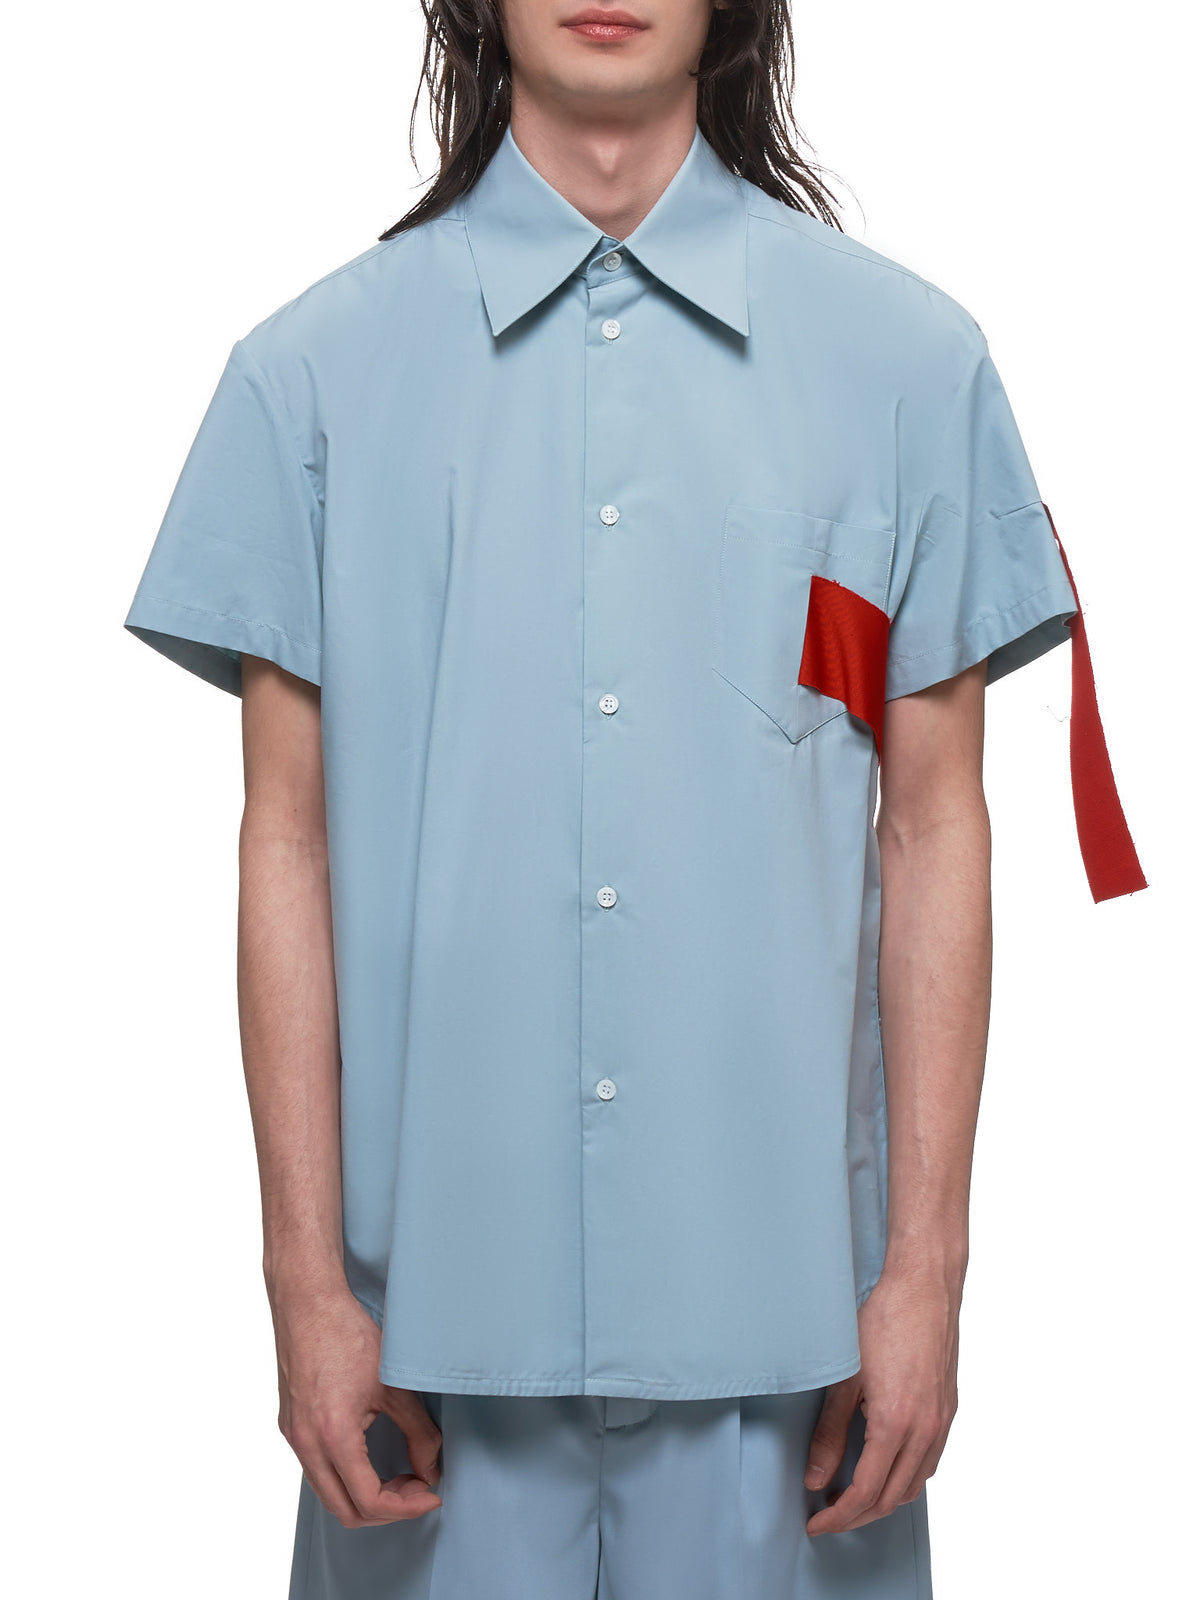 Pale Chambray Short Sleeve Shirt (4008-N1005-GRAY